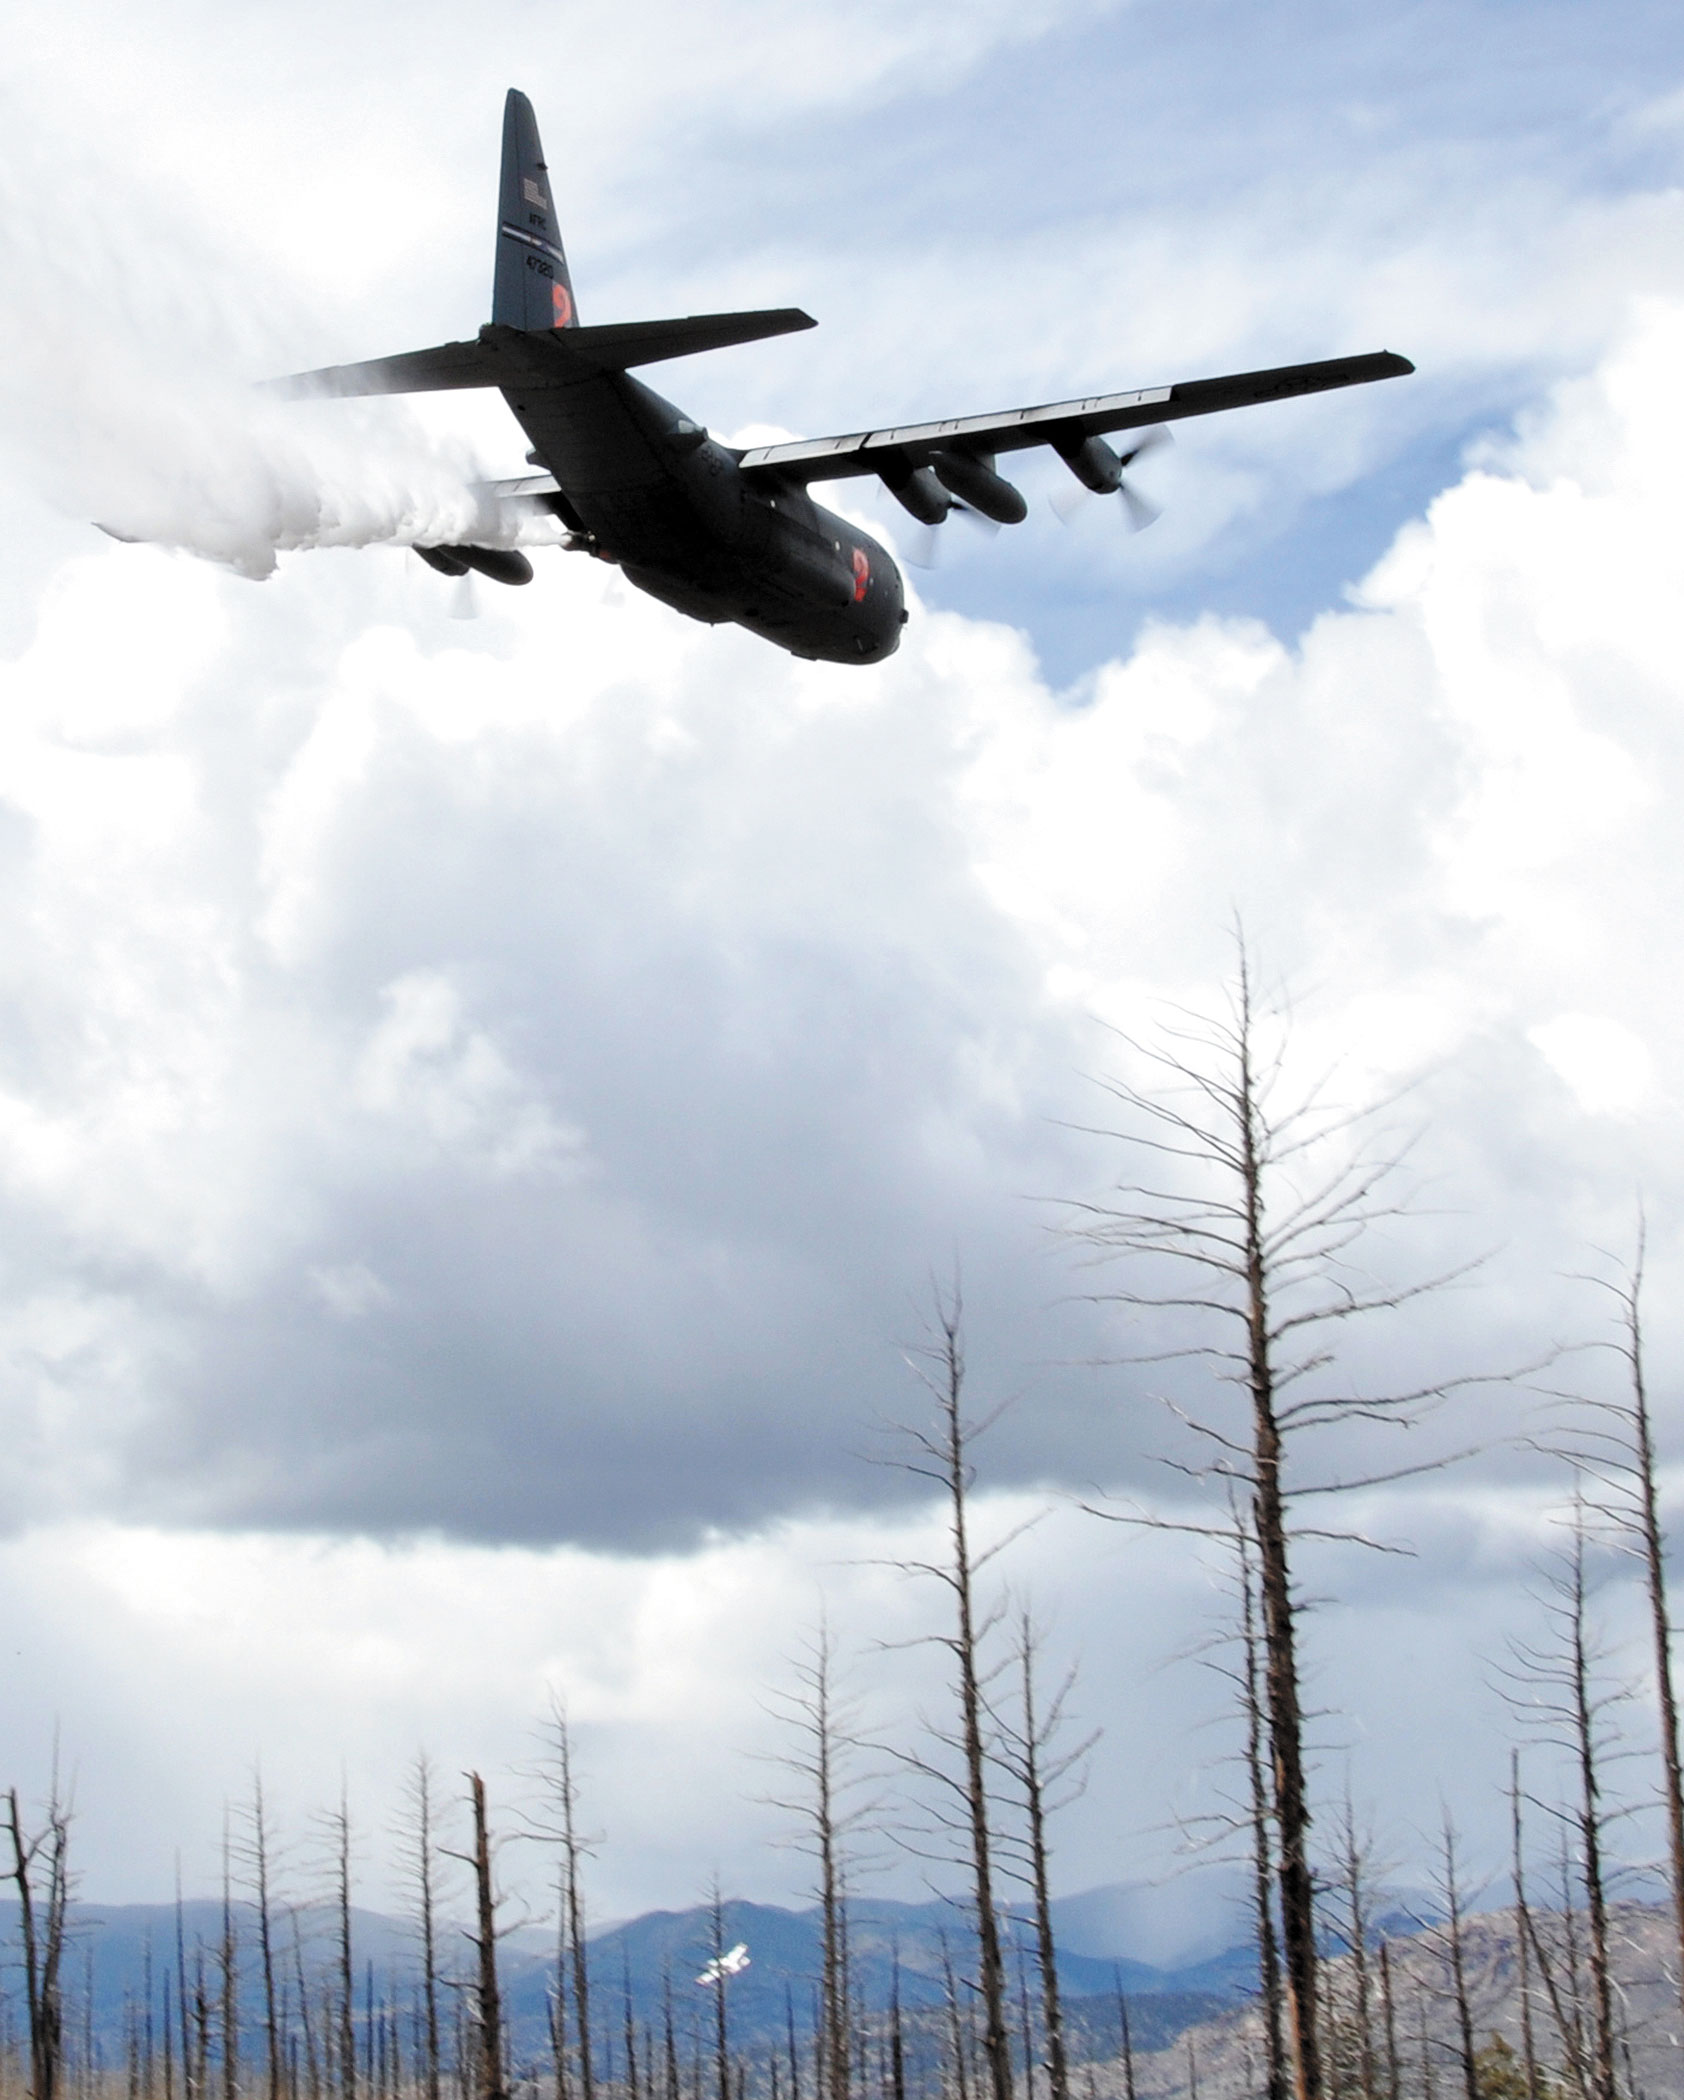 (U.S. Air Force photo/Master Sgt. Daniel Butterfield) A Modular Airborne Fire Fighting System-equipped C-130 from the Air Force Reserve's 302nd Airlift Wing drops potable water near Hackett mountain in Pike National Forest, Colo. during MAFFS certification training, May 16, 2015. Retardant dropped from a MAFFS-equipped C-130 can cover an area one-quarter of a mile long and 100 feet wide to aid in the containment of wildland fires.